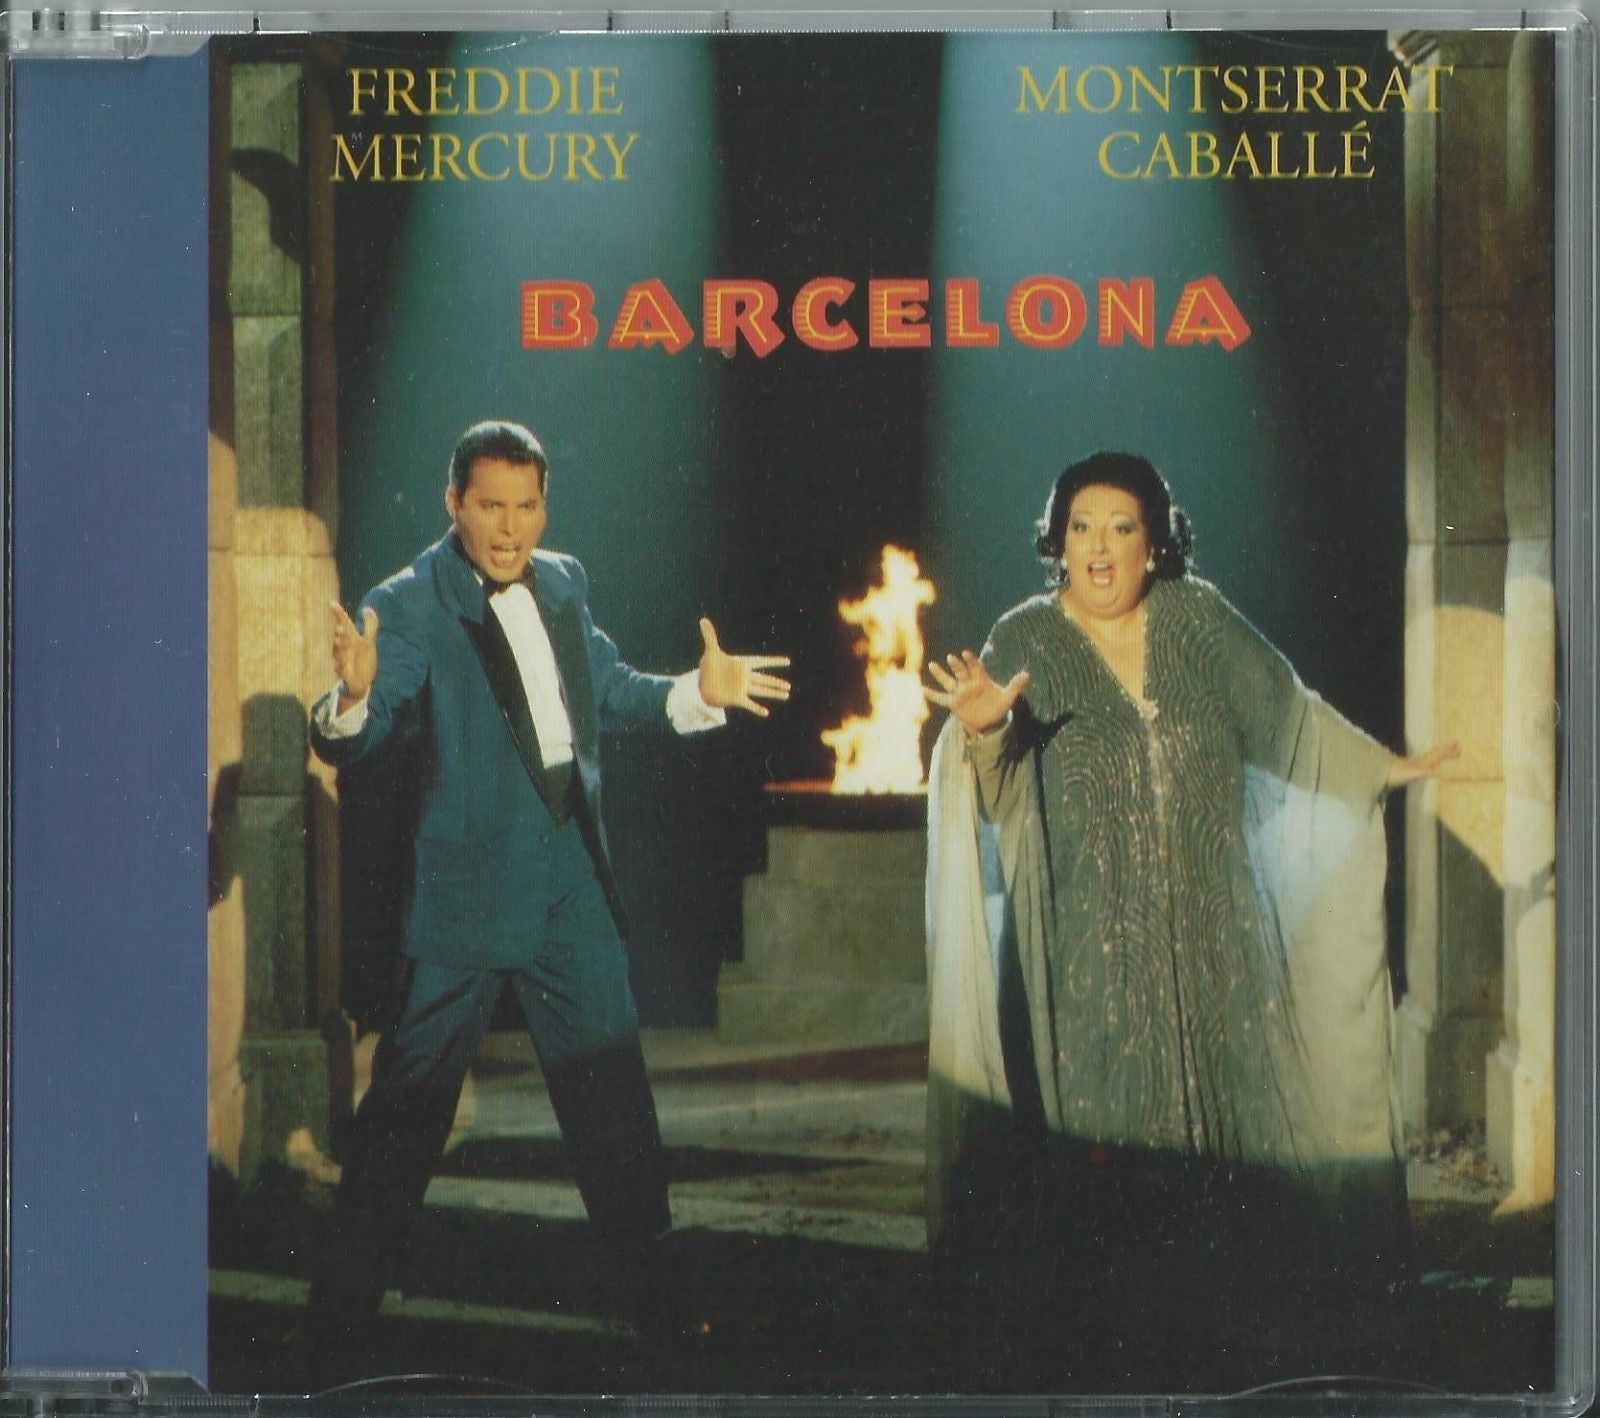 FREDDIE MERCURY & MONTSERRAT CABALLE - BARCELONA 1992 UK 4 TRACK CD SINGLE QUEEN